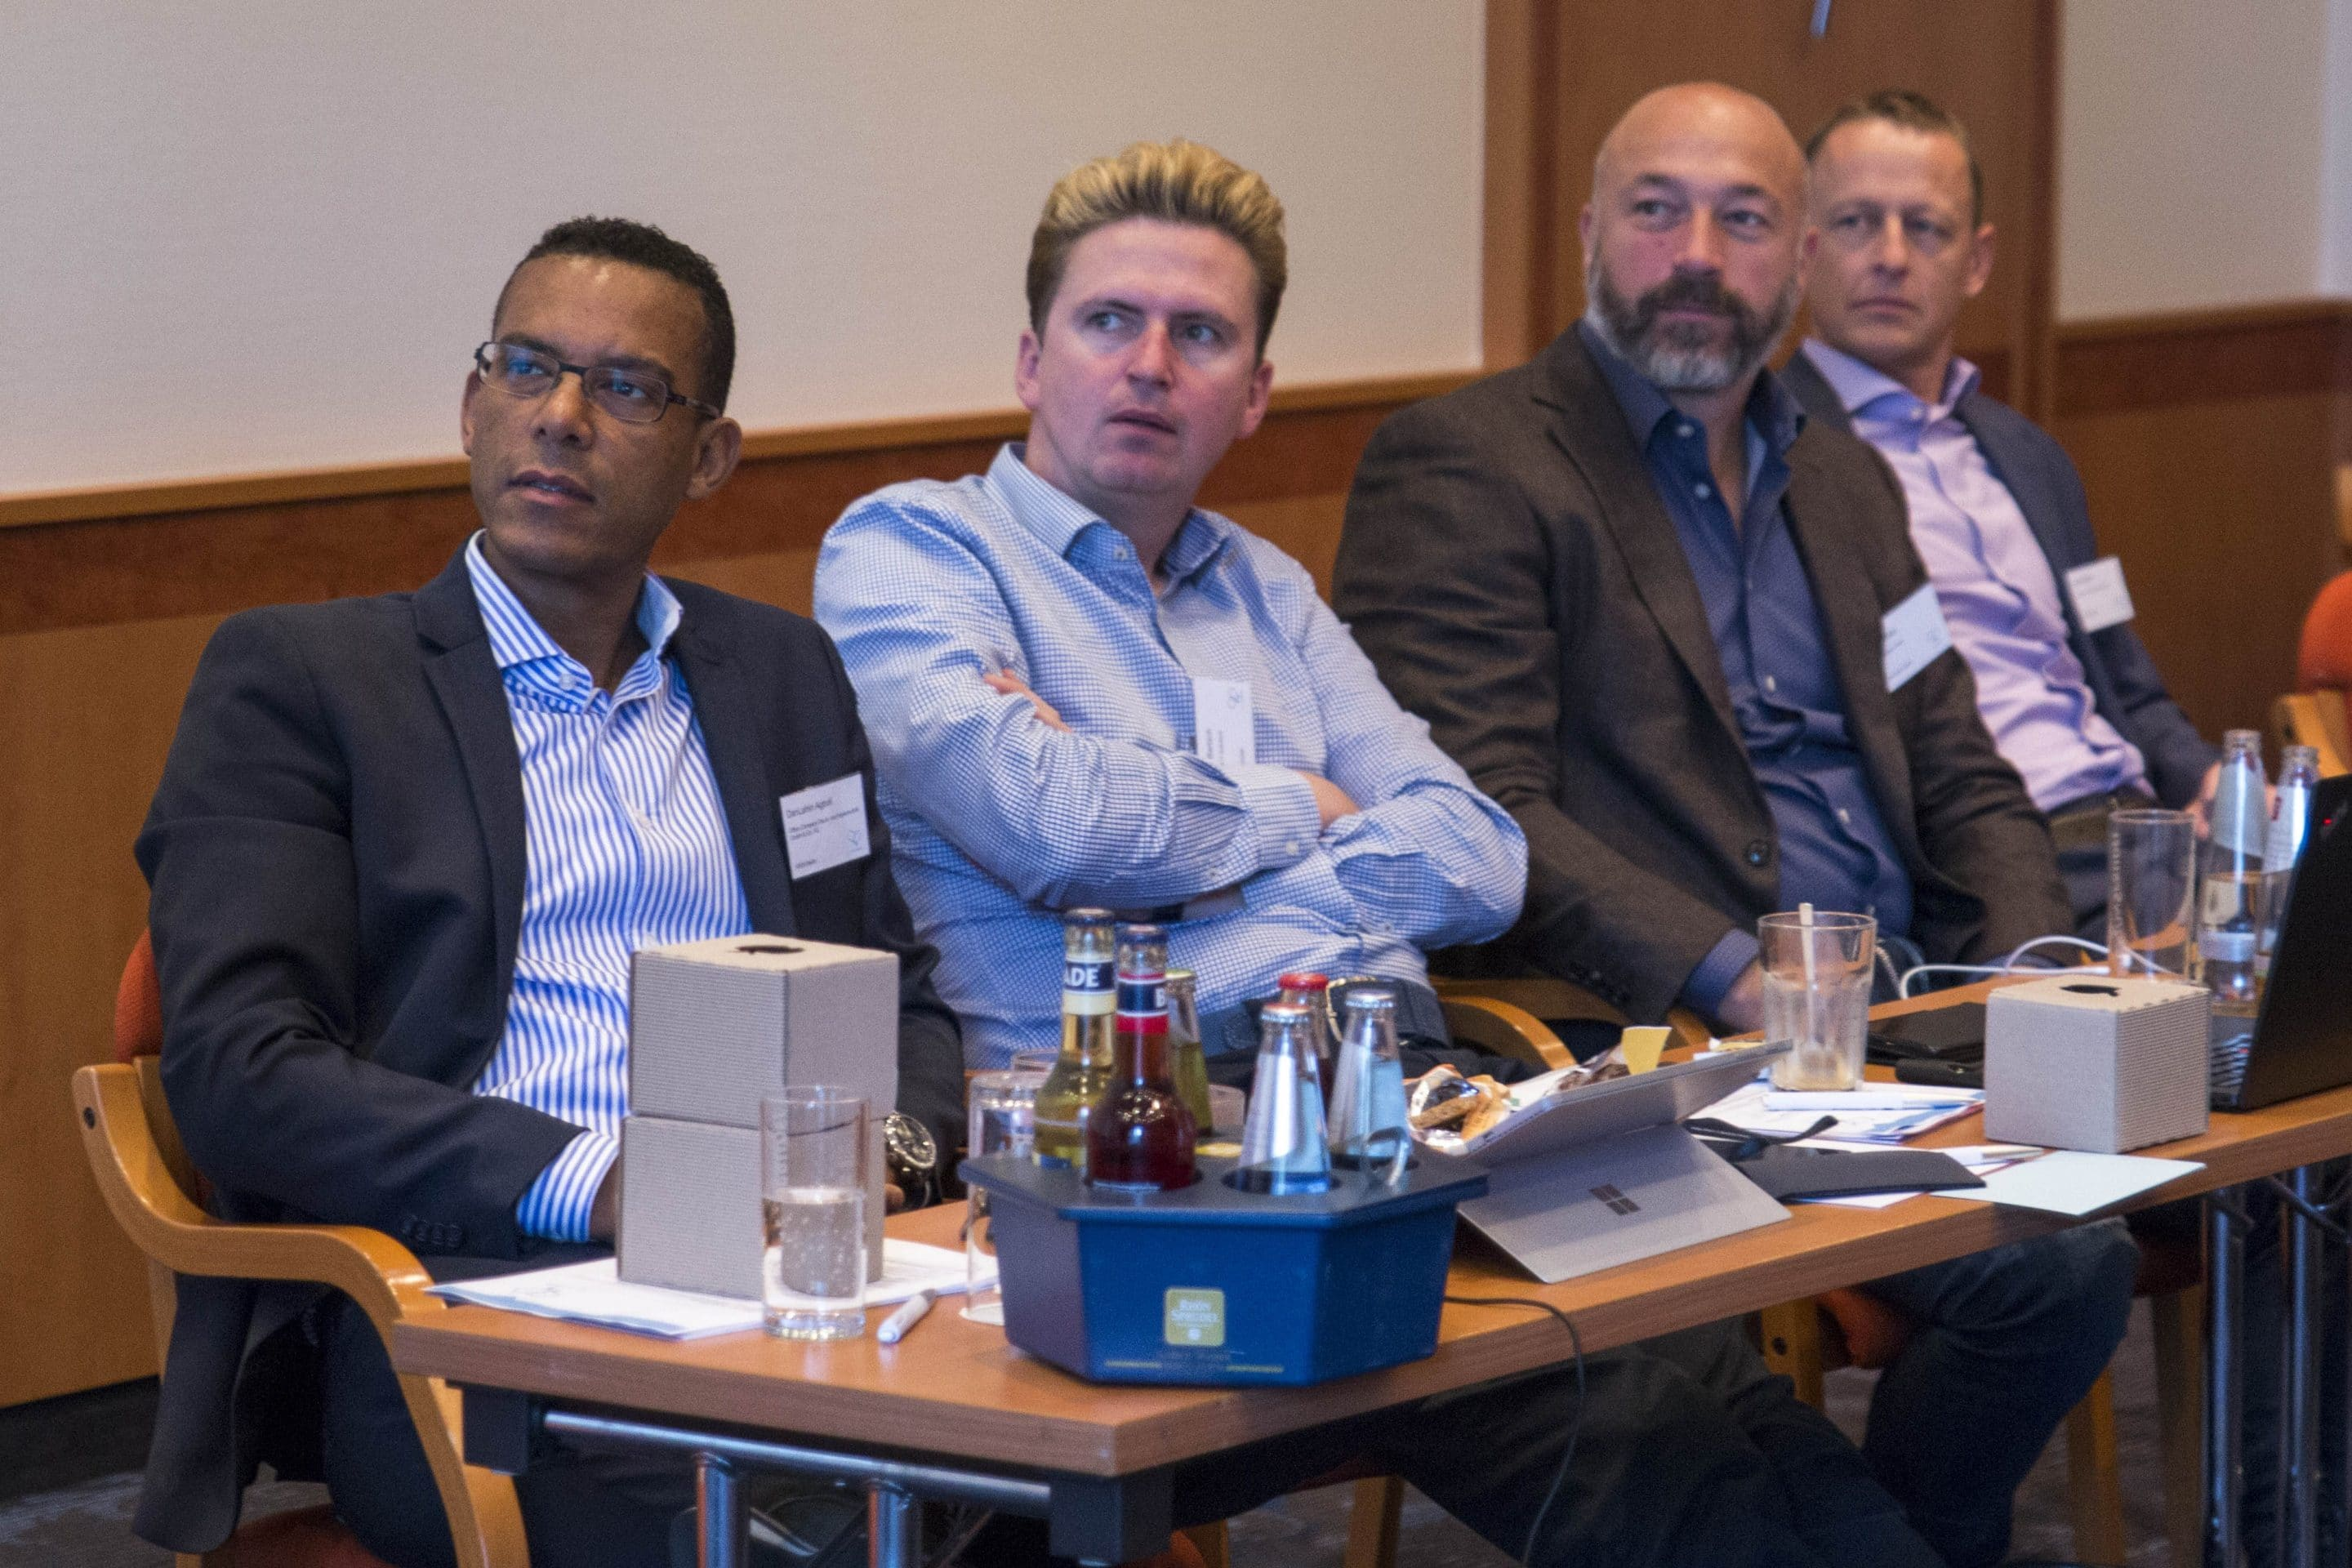 ITLeague Managementsummit 2017 - Vortrag